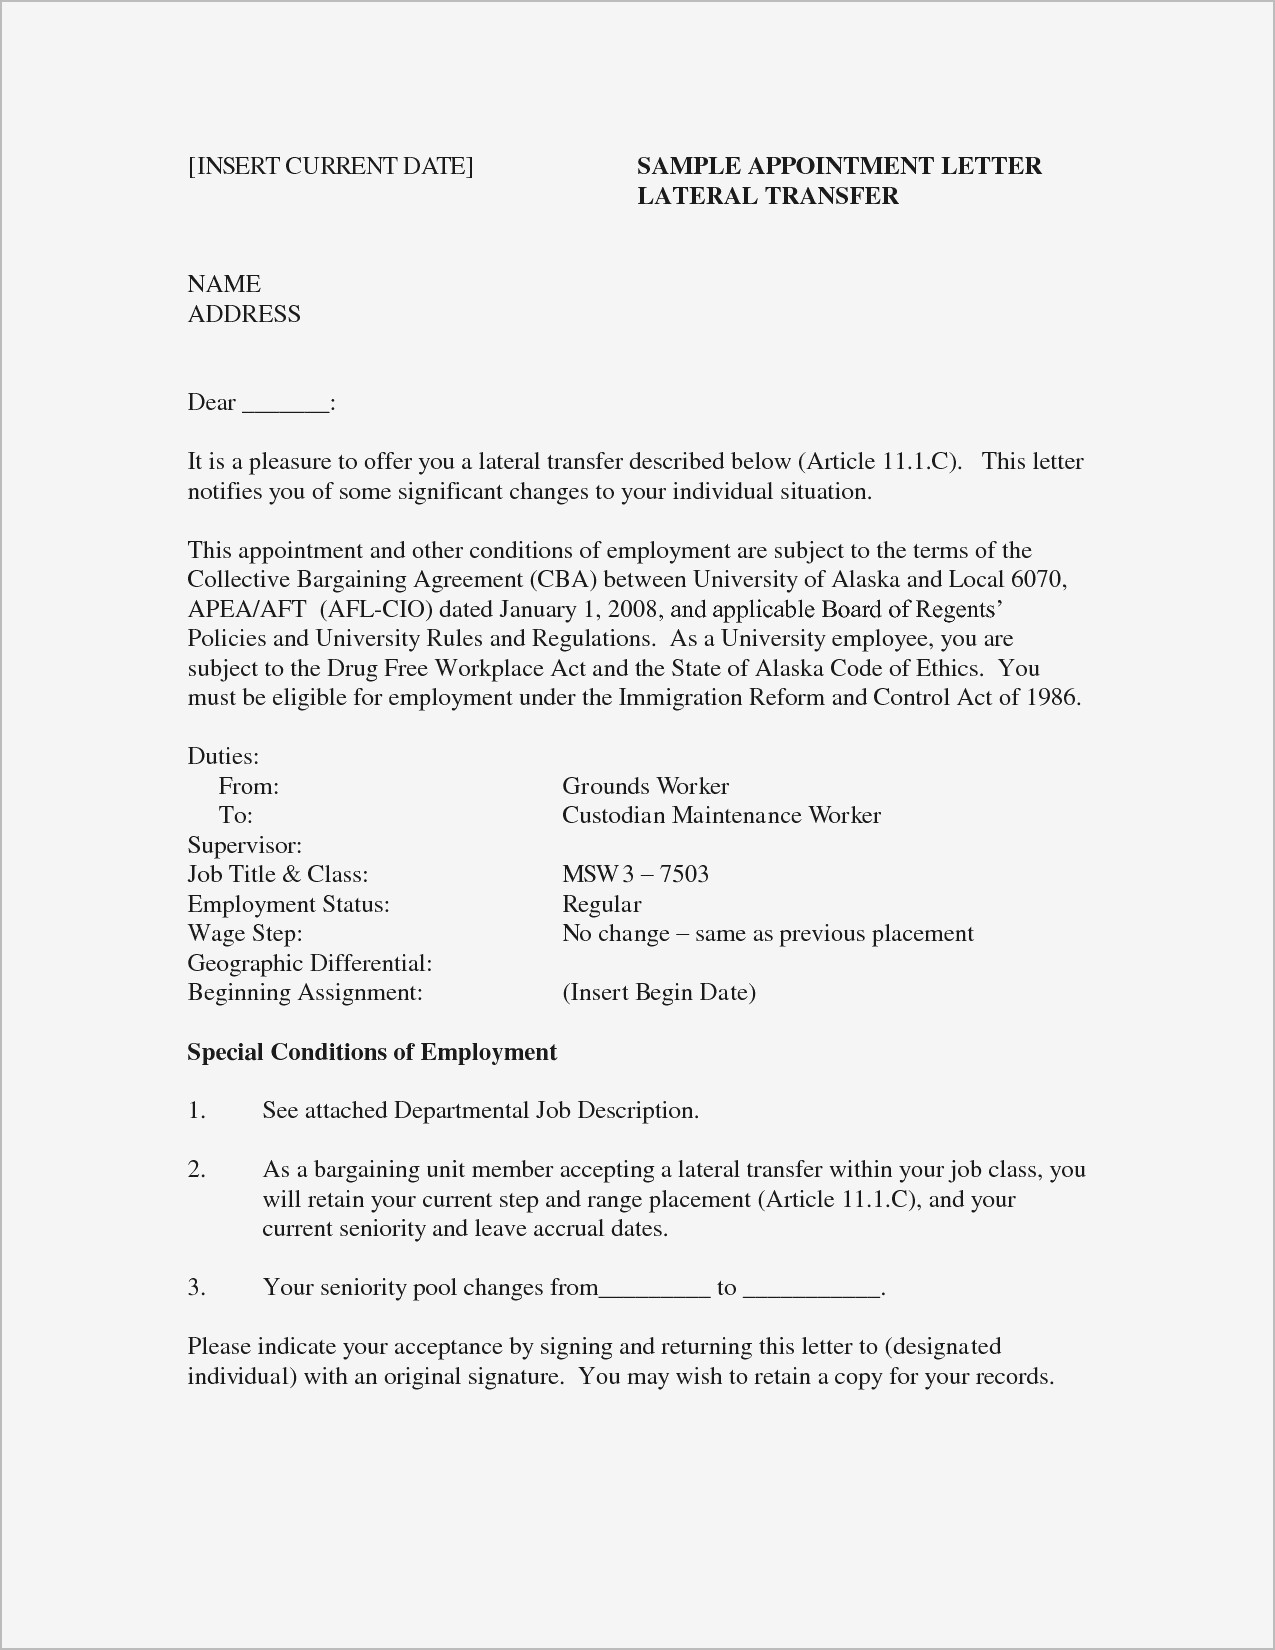 Letter Of Instruction Template Stock Transfer Collection Letter